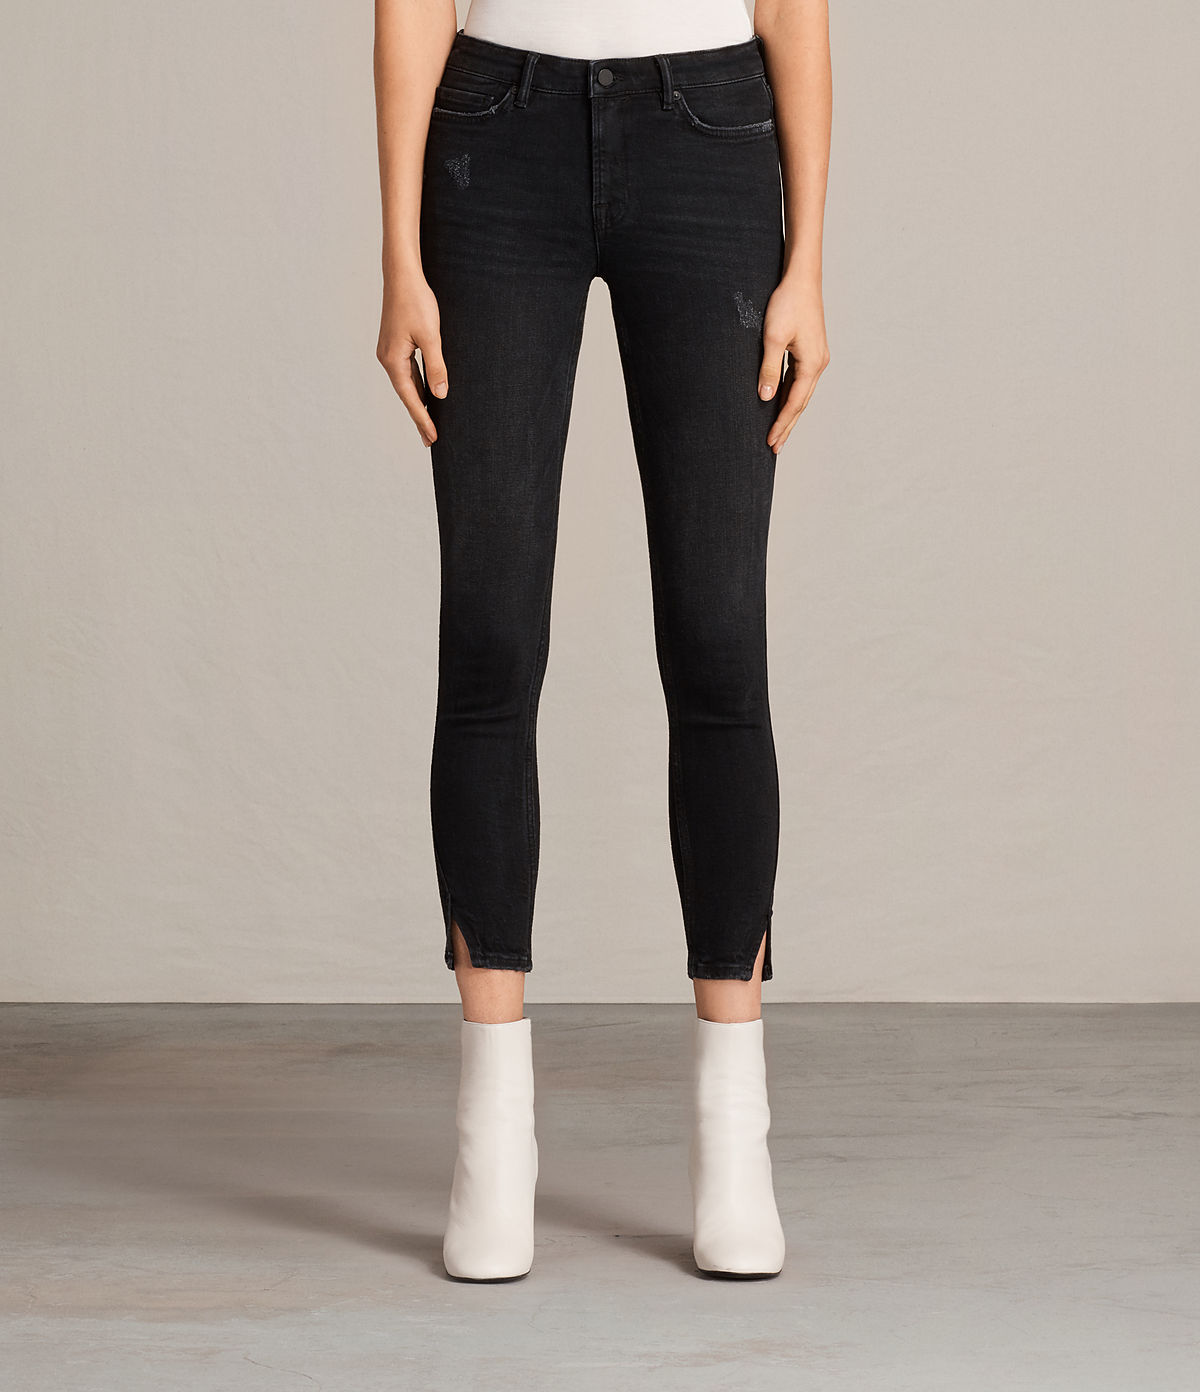 mast-twisted-jeans